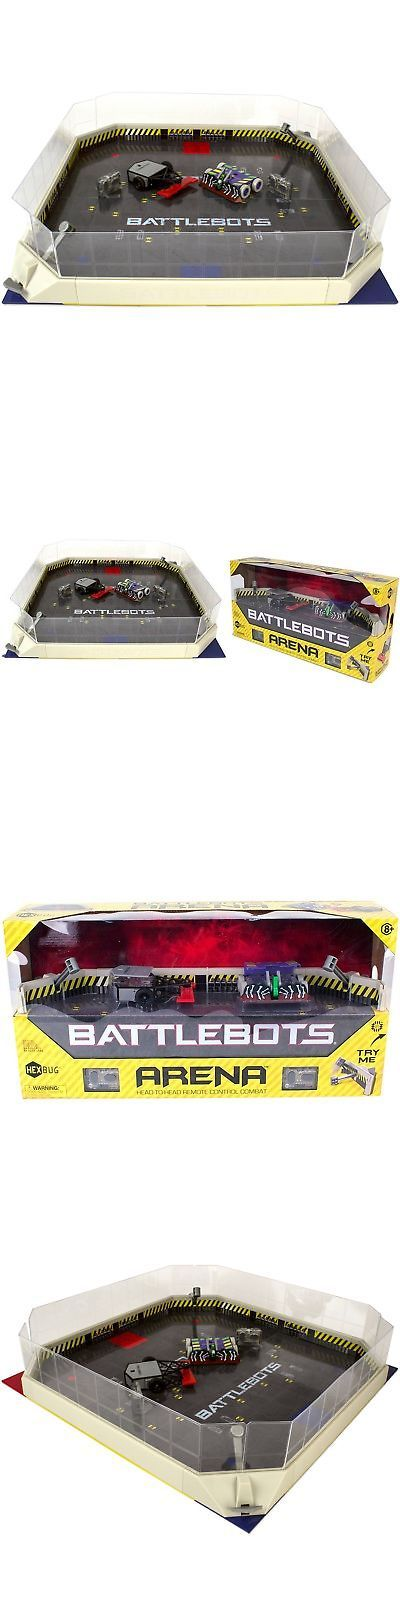 Micropets 52341: Battlebots Arena Playset Fold Out Game Board Remote Control Metallic War Zone -> BUY IT NOW ONLY: $78.28 on eBay!